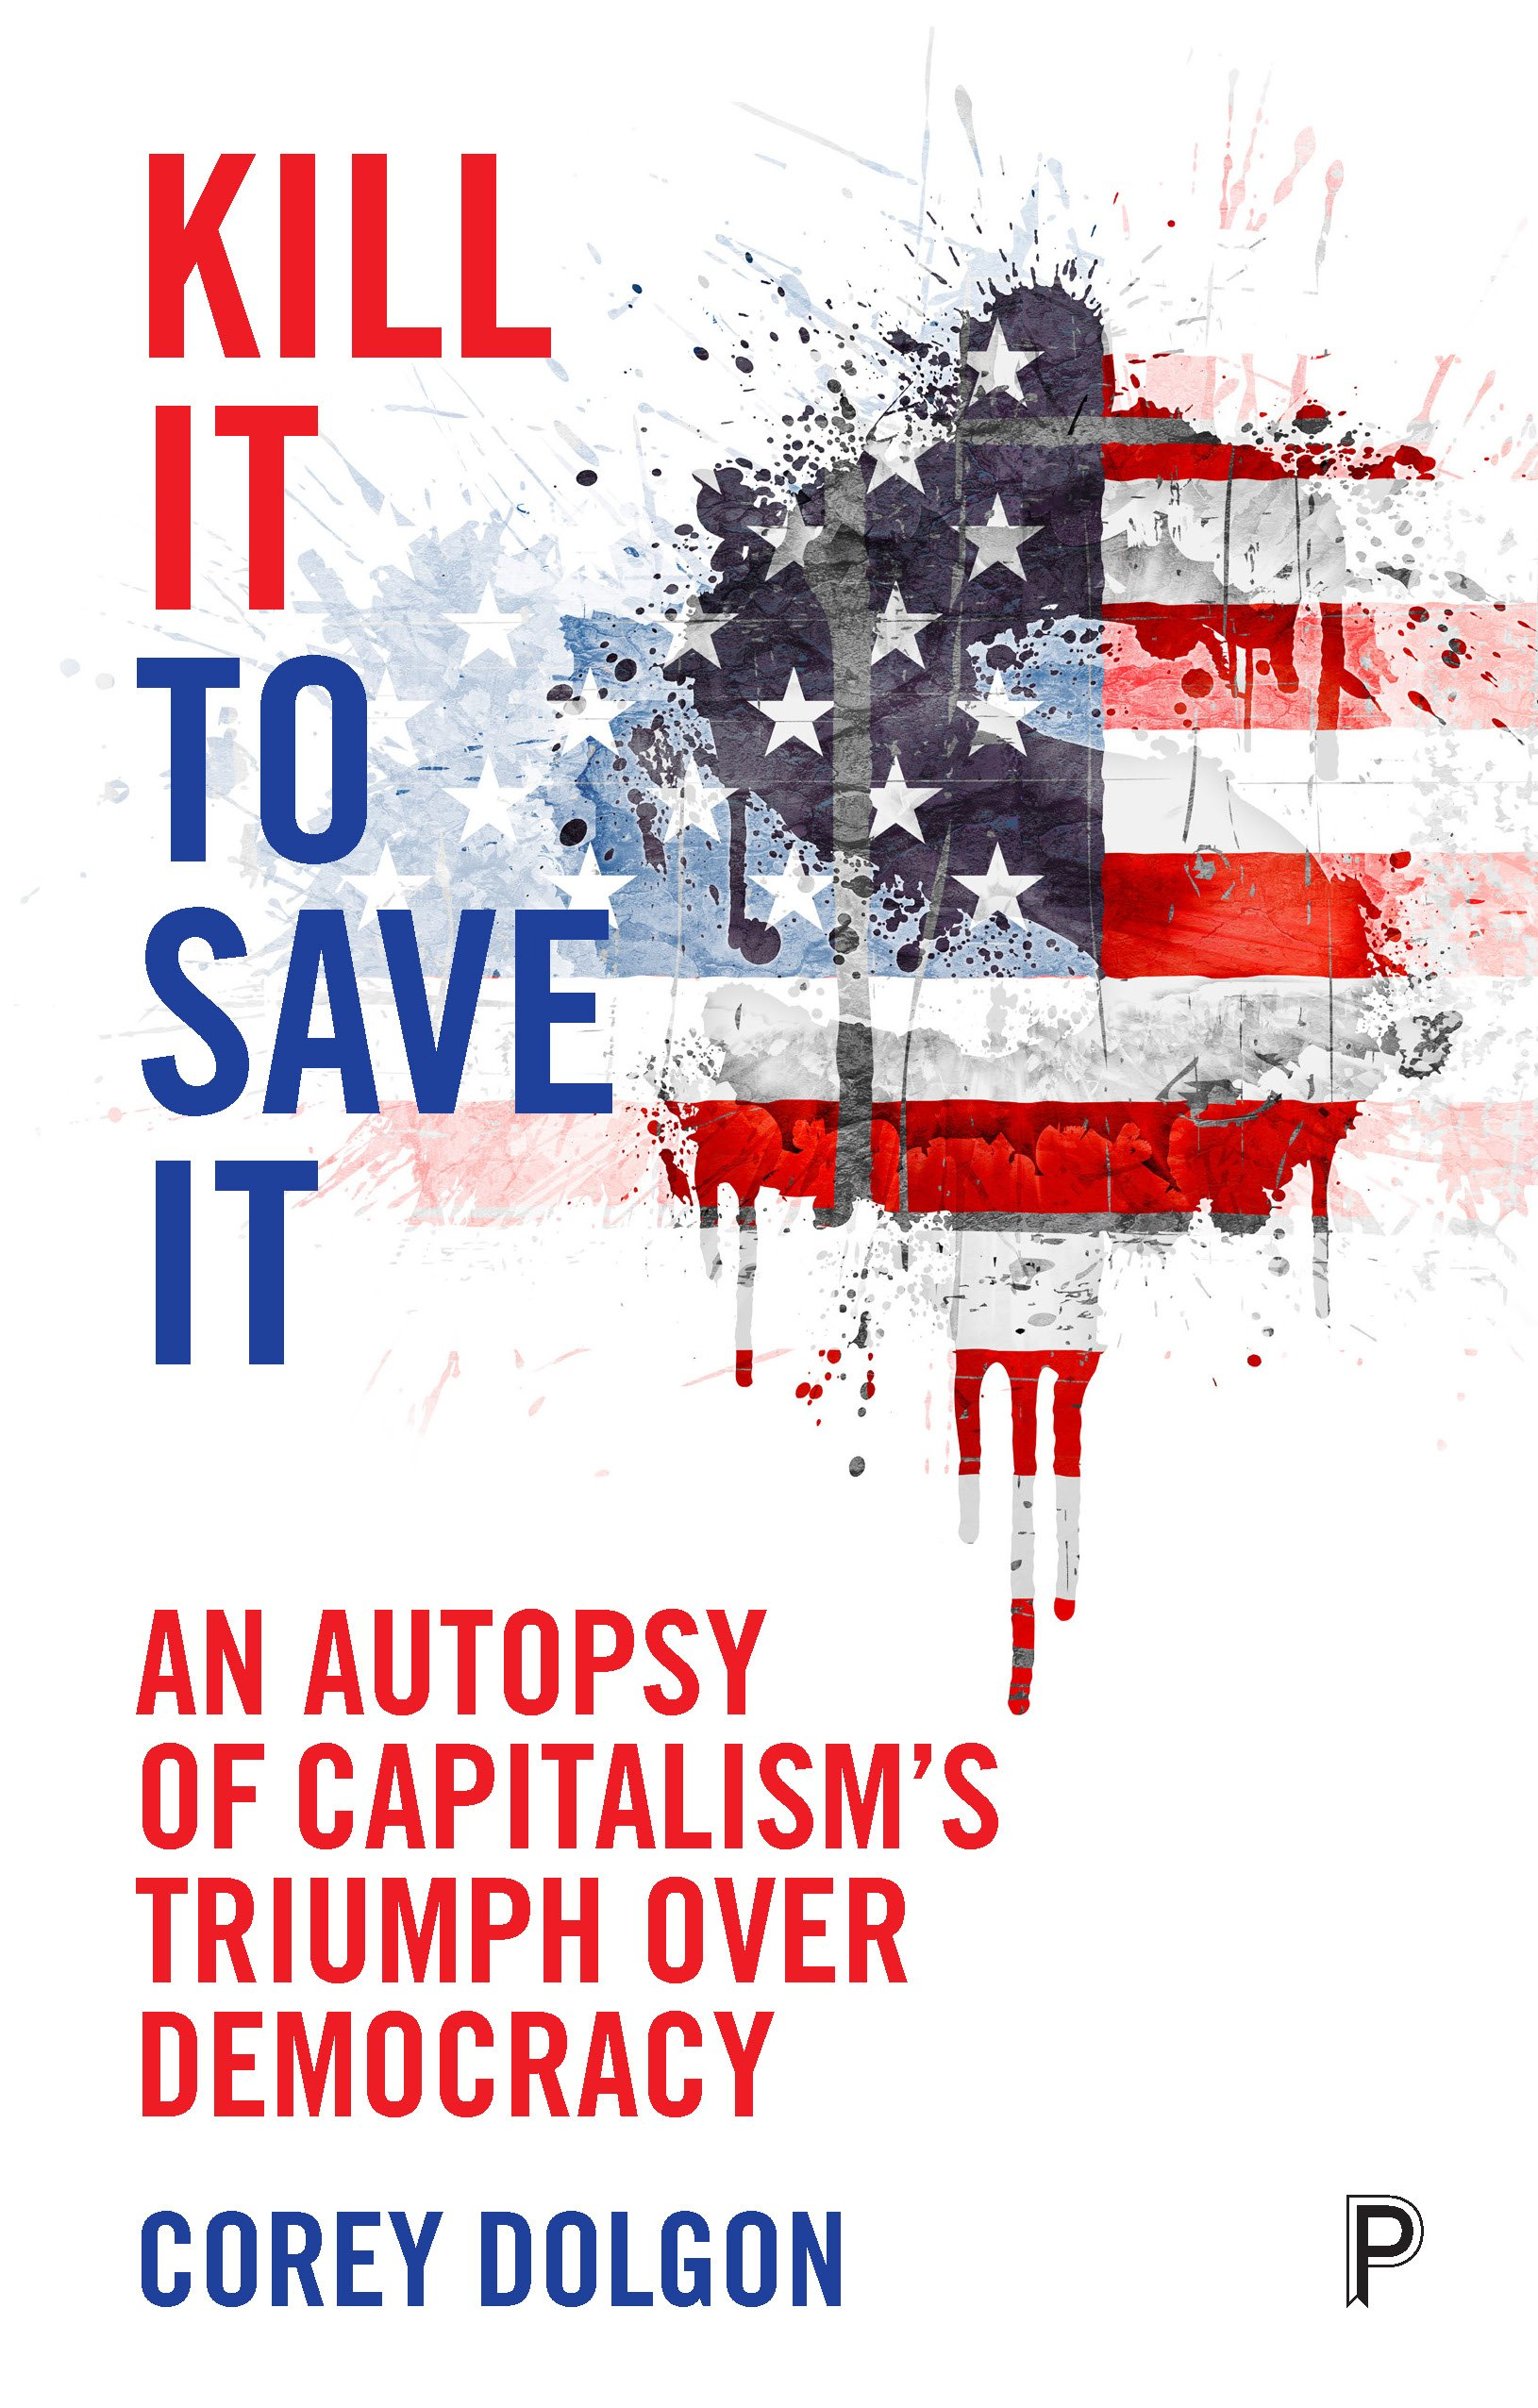 Kill it to save it an autopsy of capitalisms triumph over kill it to save it an autopsy of capitalisms triumph over democracy corey dolgon 9781447317128 amazon books fandeluxe Choice Image